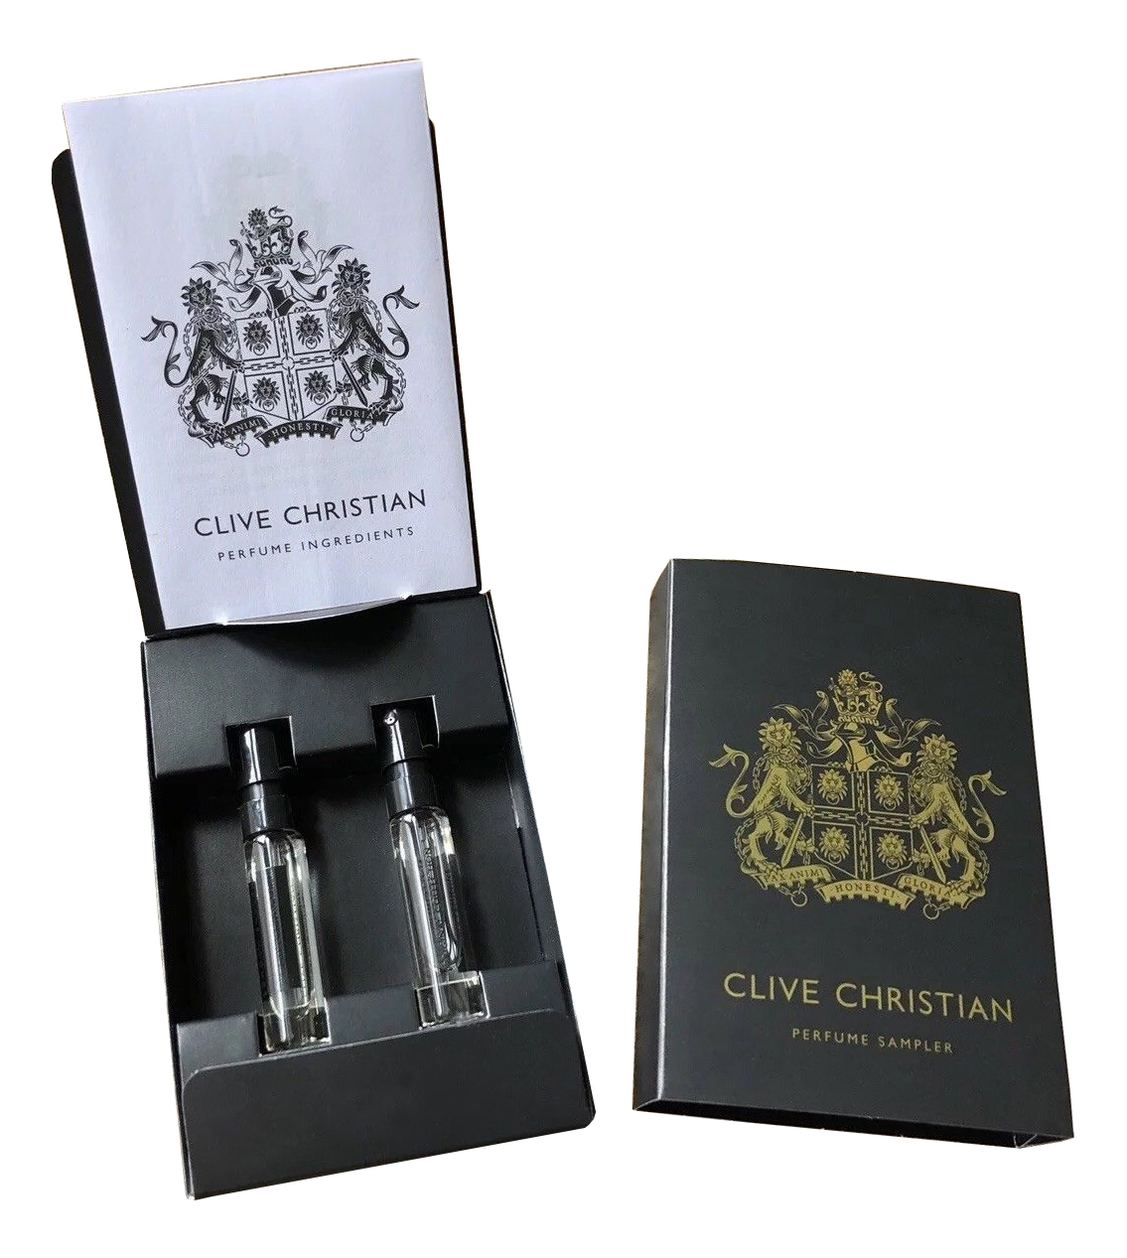 Clive Christian Original Collection Sample Set: духи 2*1,5мл (1872 Feminine + 1872 Masculine)